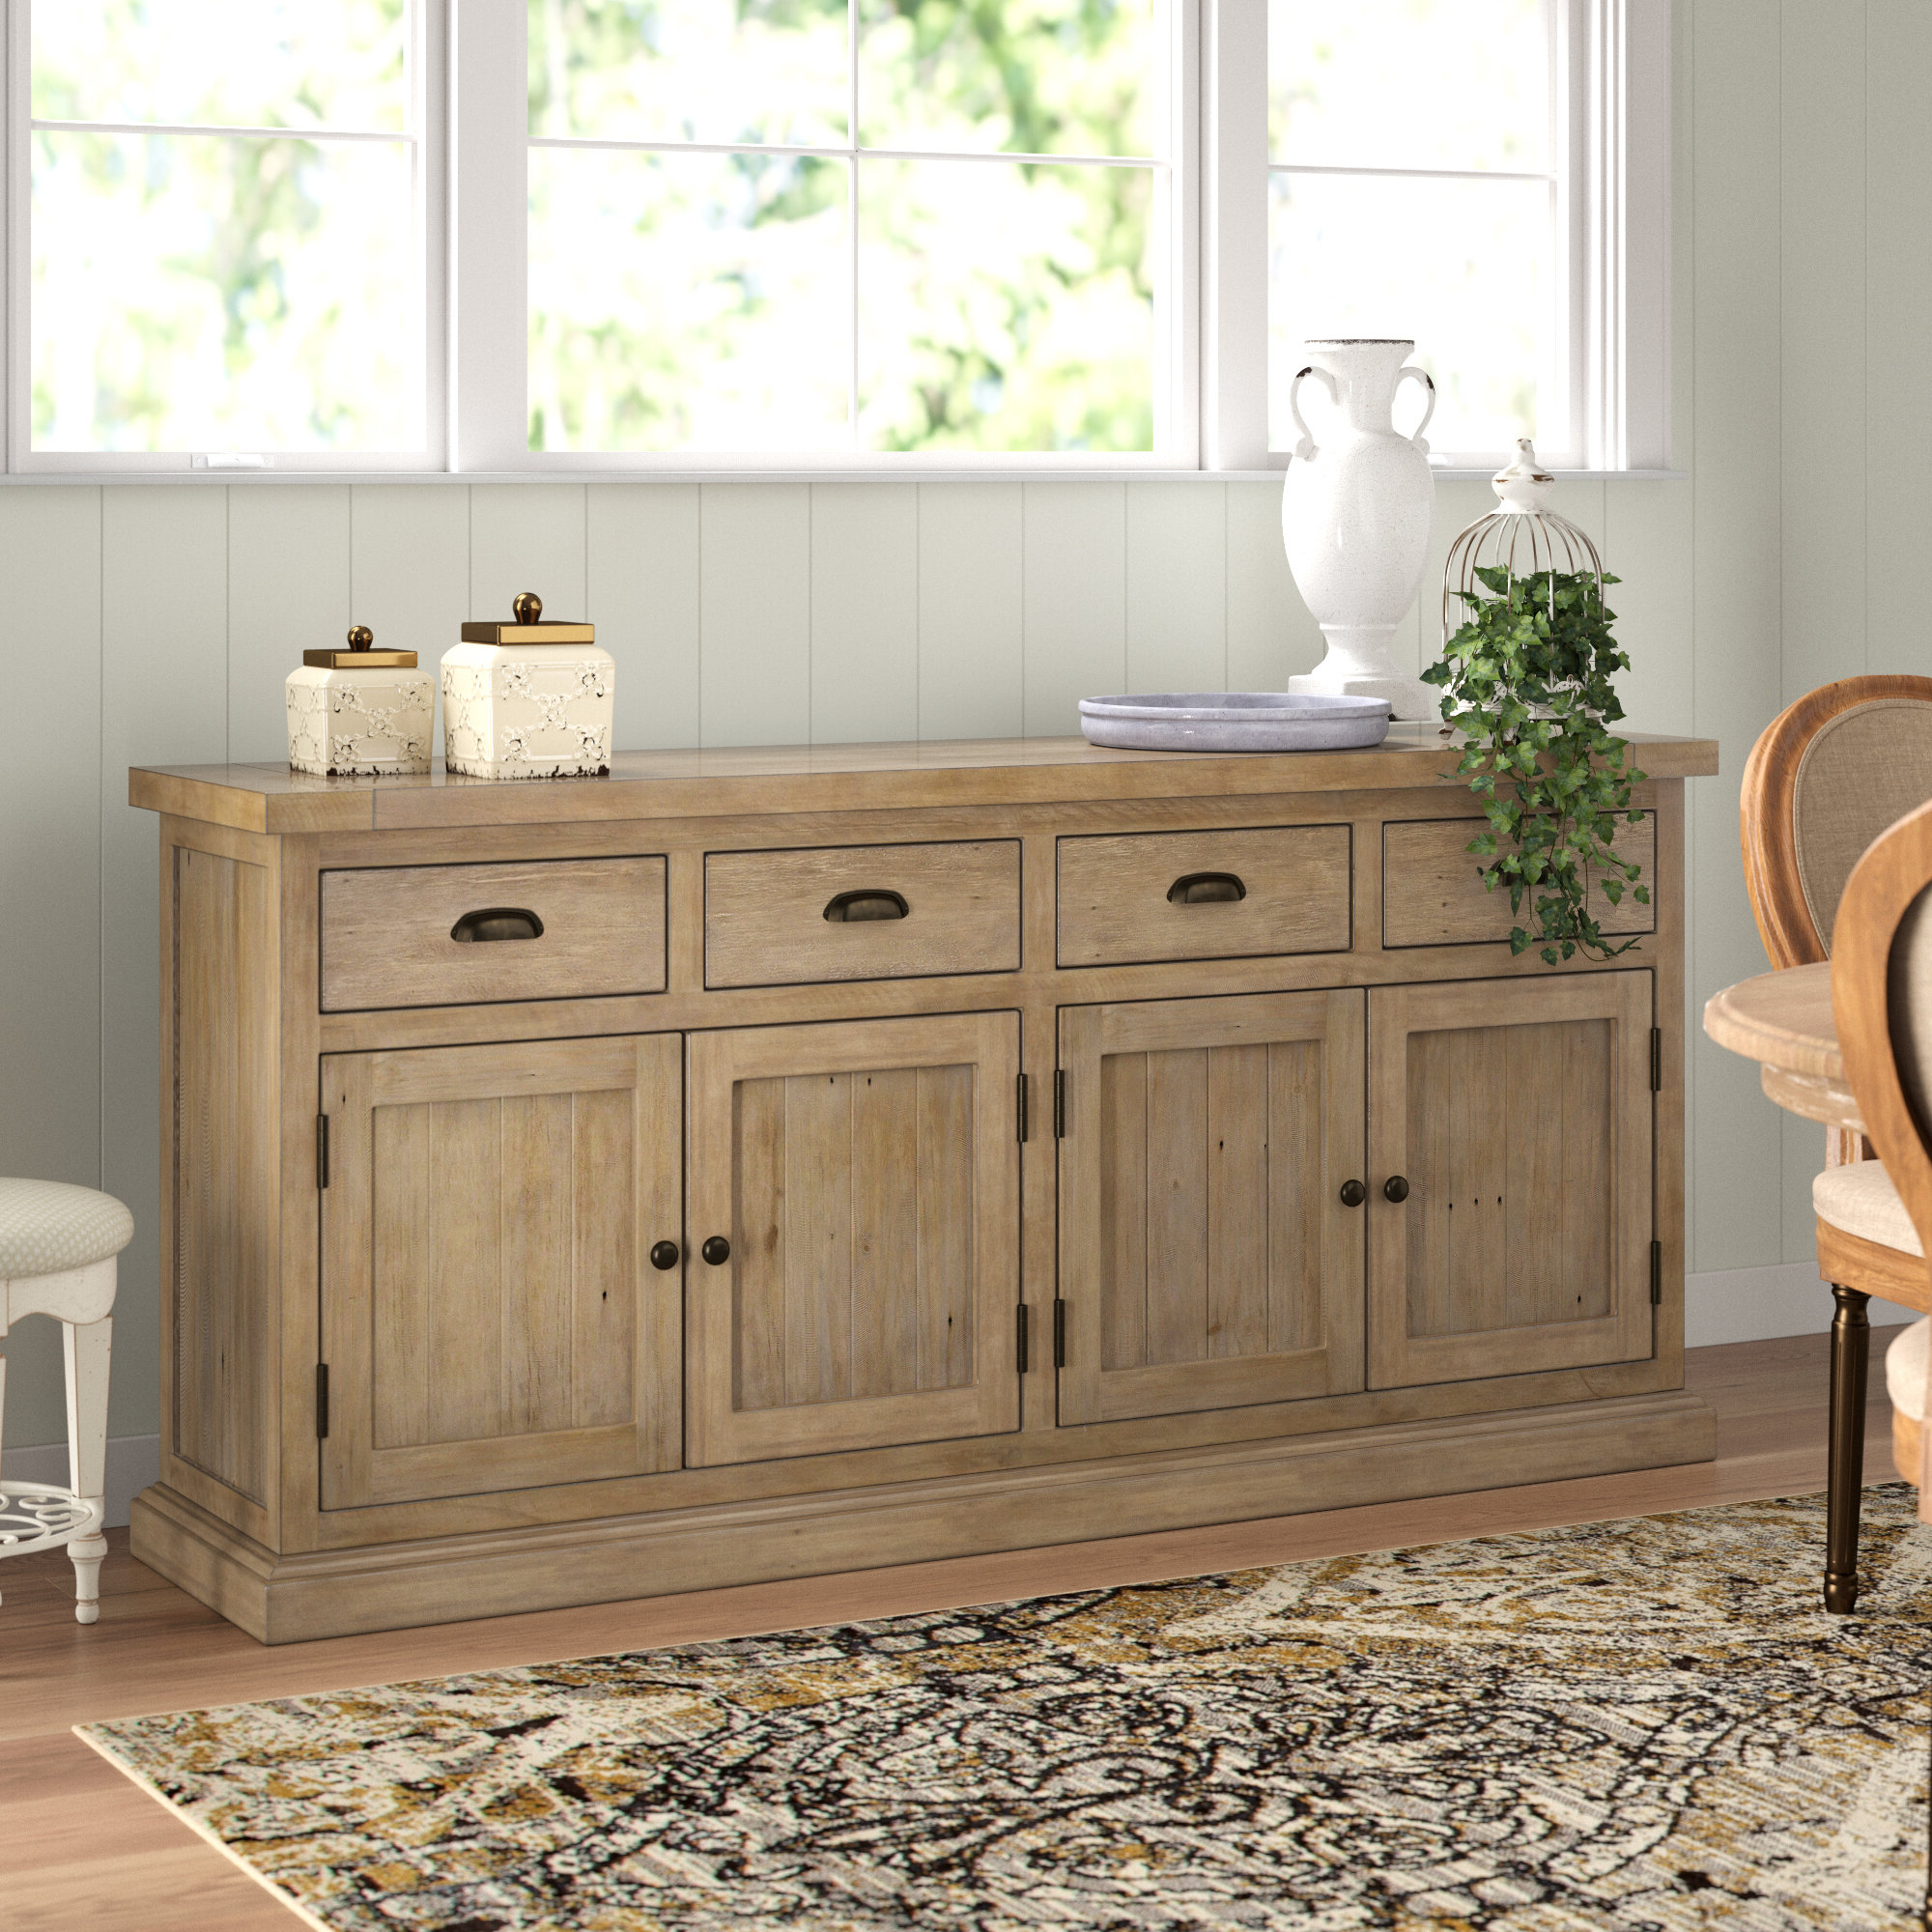 Gertrude Sideboard With Most Recently Released Gertrude Sideboards (Gallery 3 of 20)